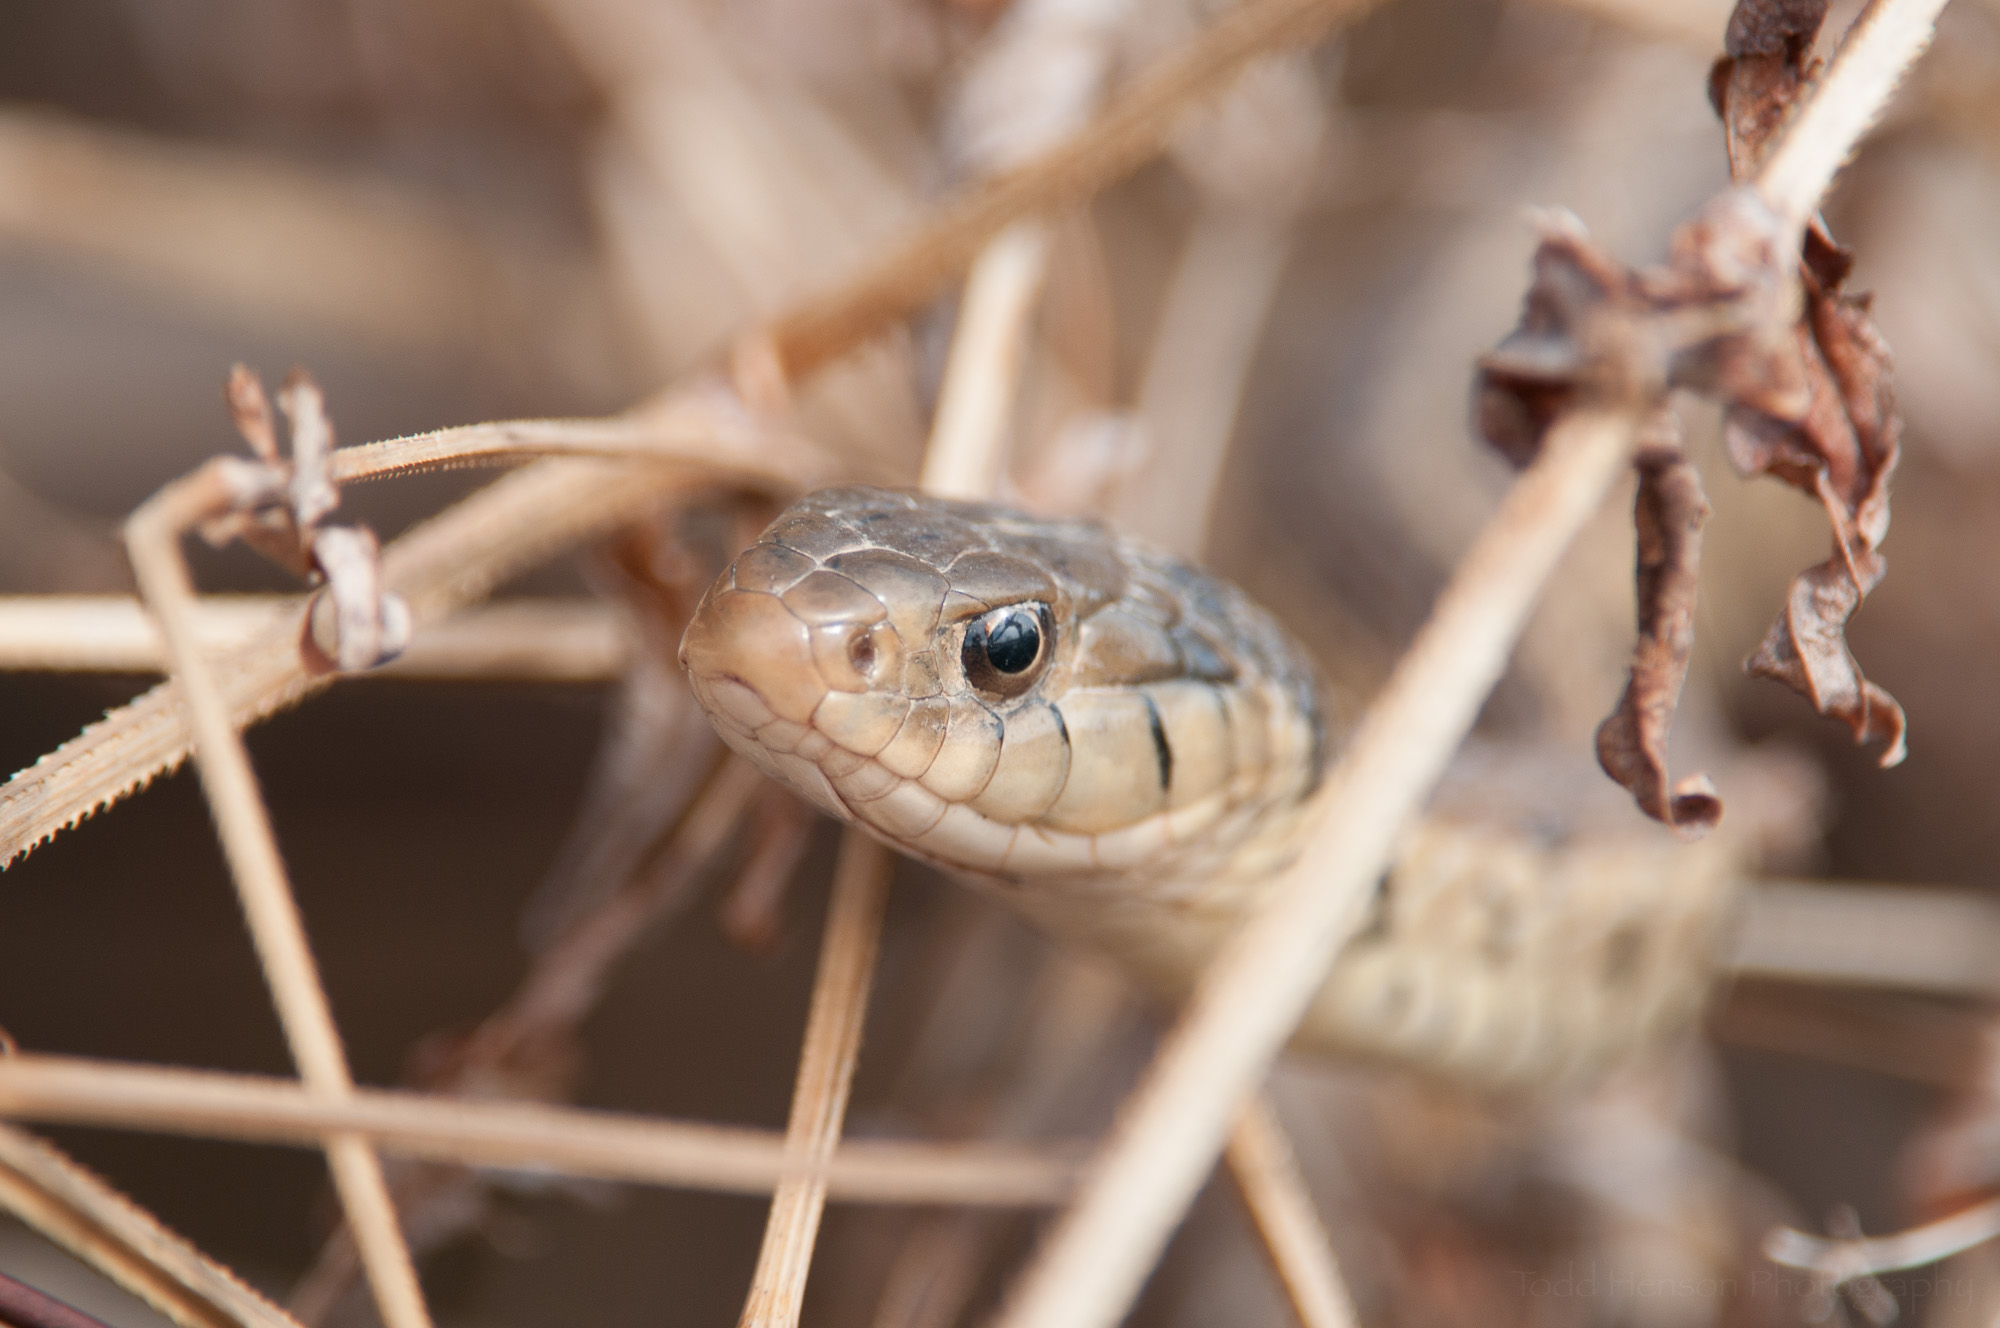 Notice how little of the snake is in focus. The camera is not parallel to the body of the snake.